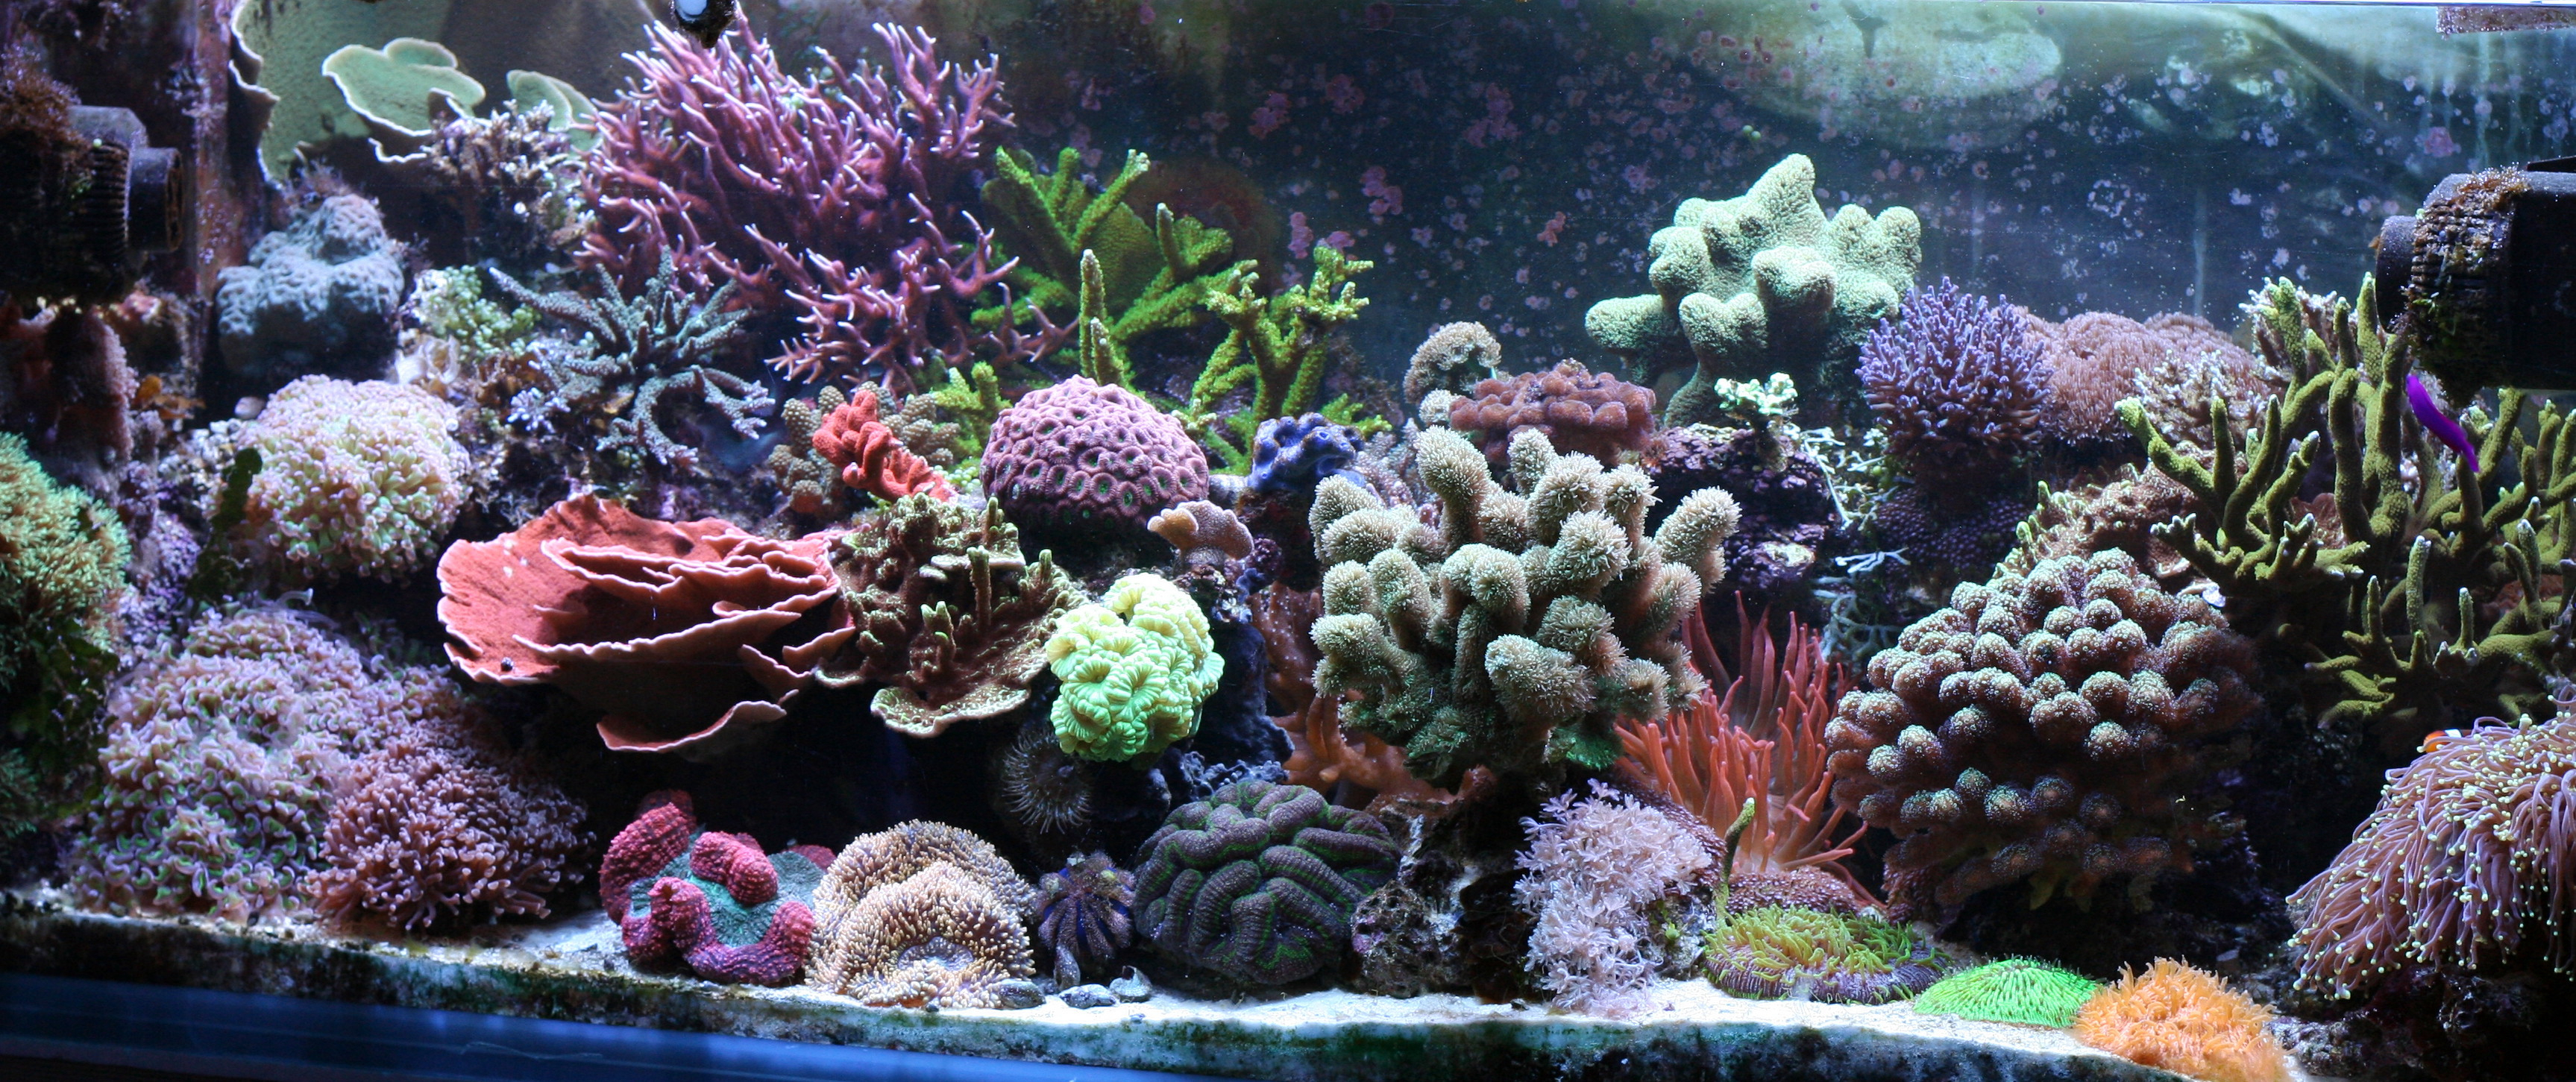 Reef aquascaping on pinterest reef aquarium saltwater for Saltwater reef fish